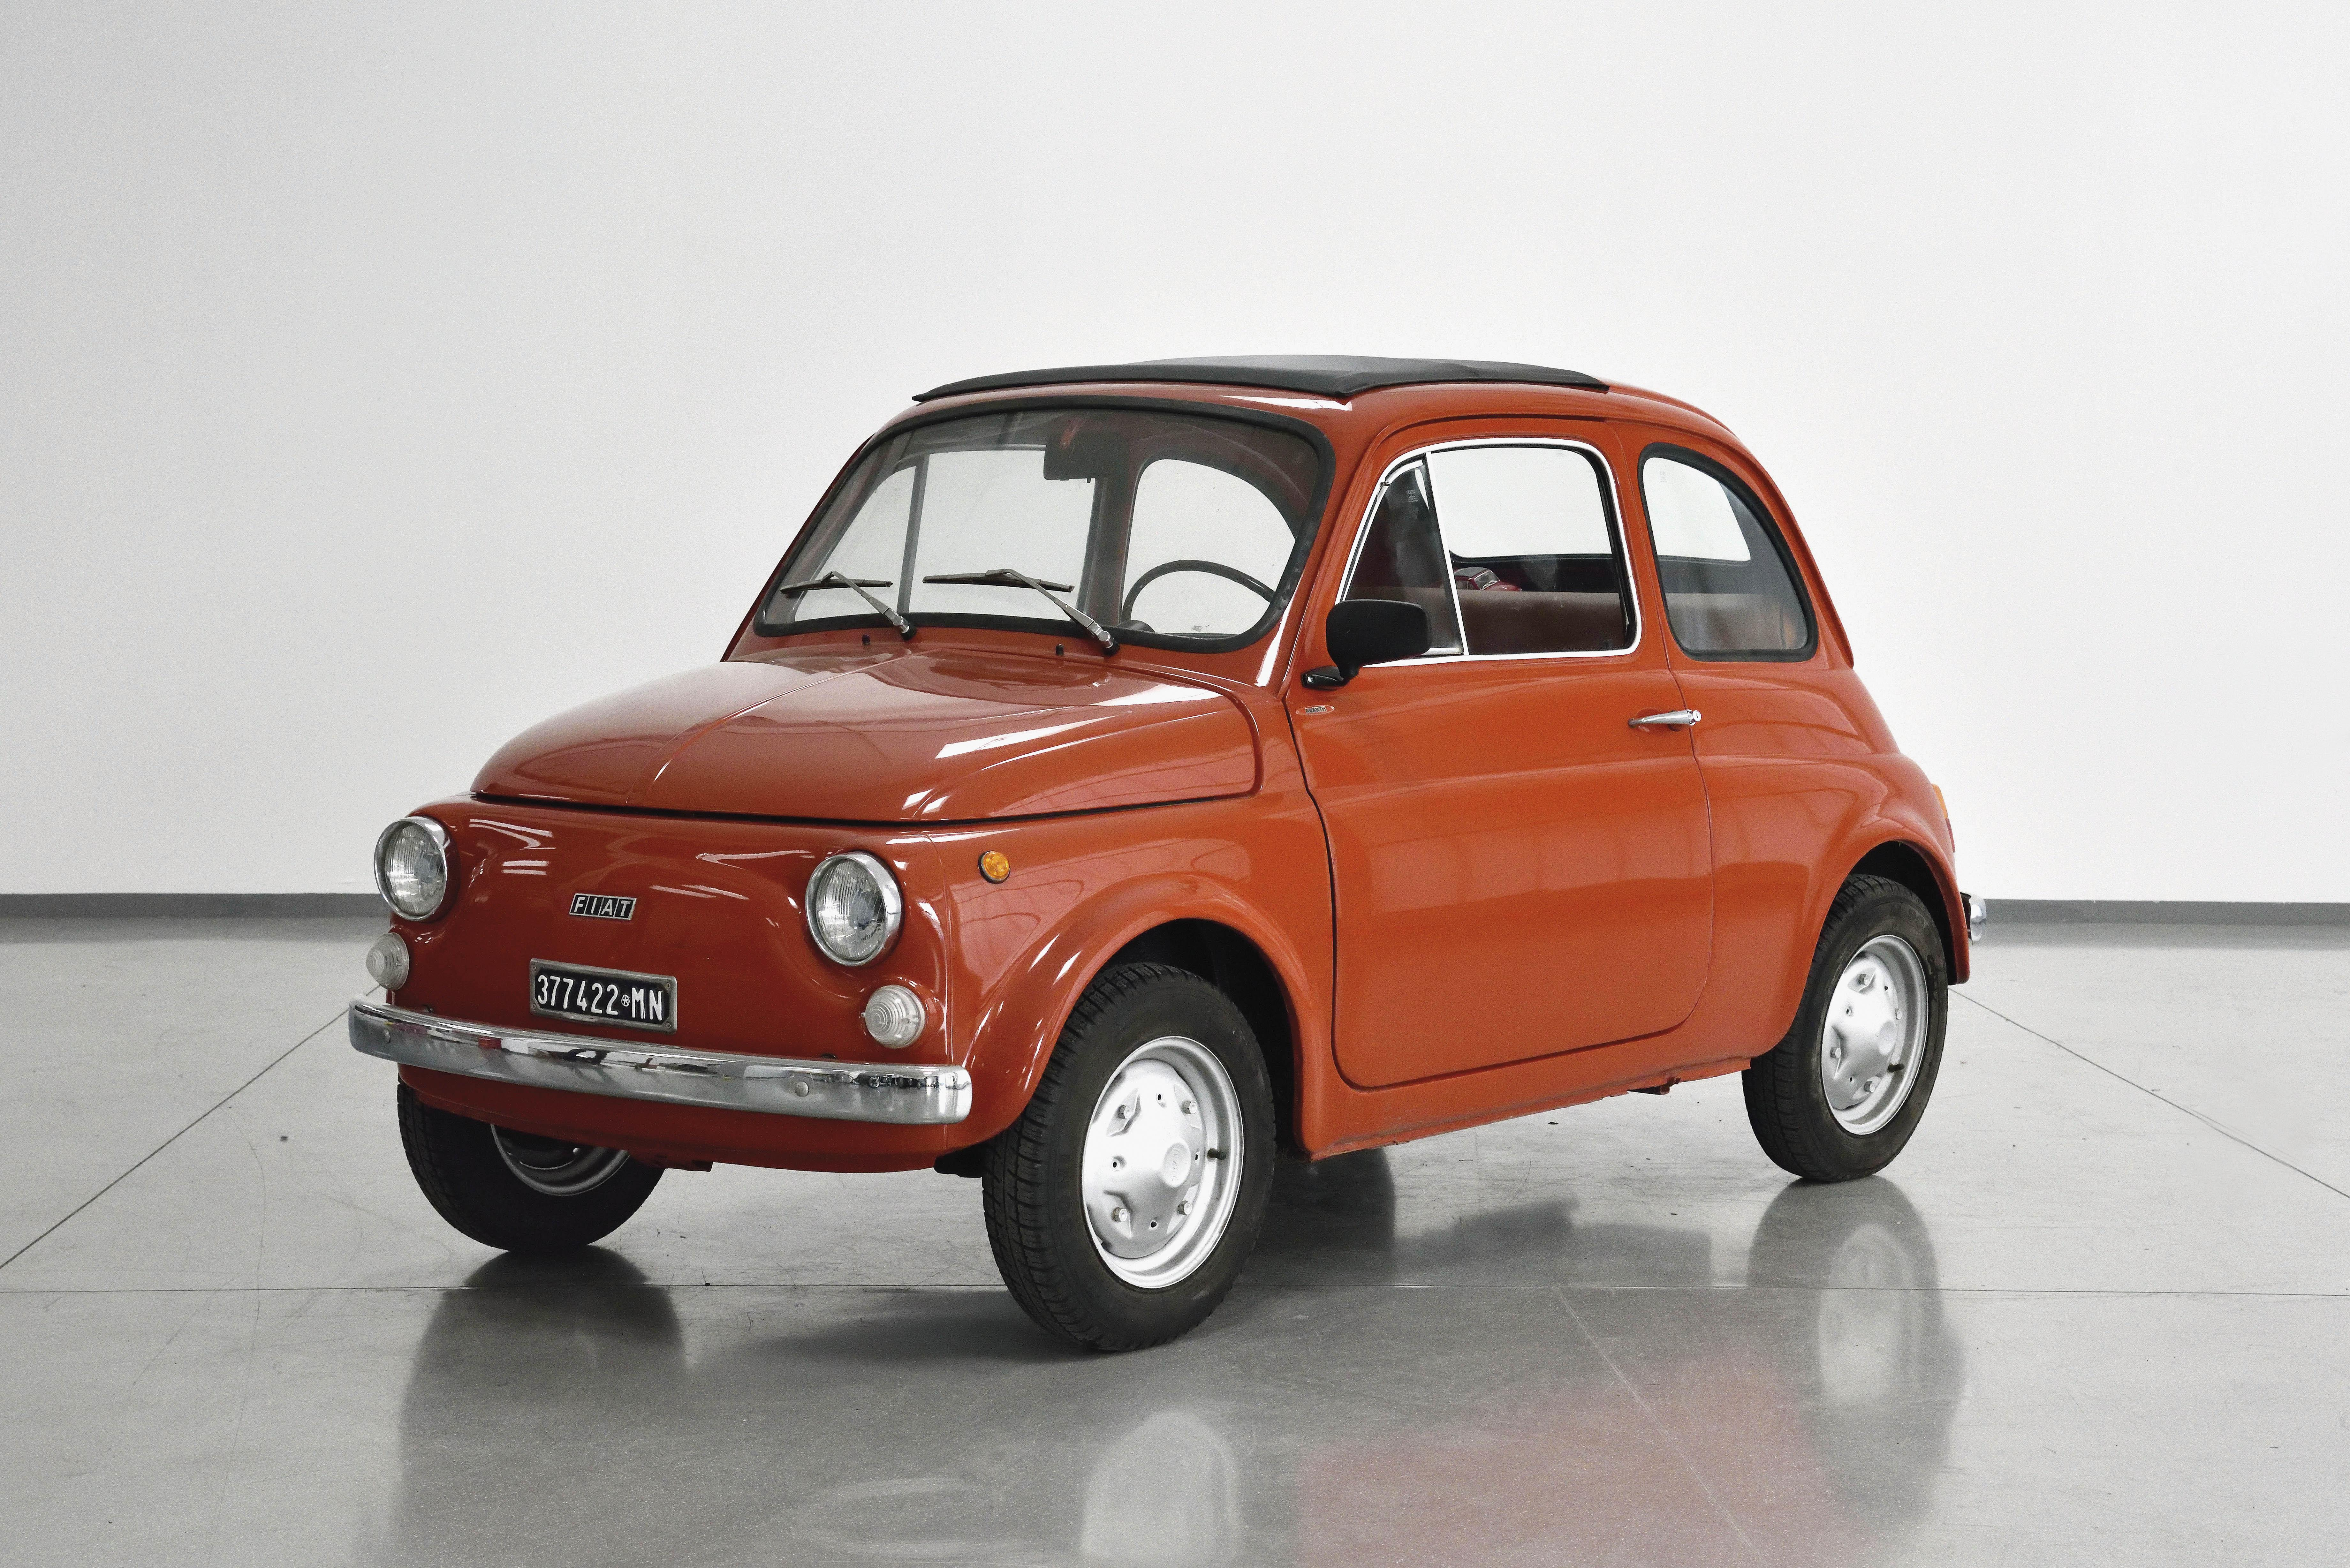 1974 Fiat 500 R Classic Cars 2018 06 23 Realized Price Eur